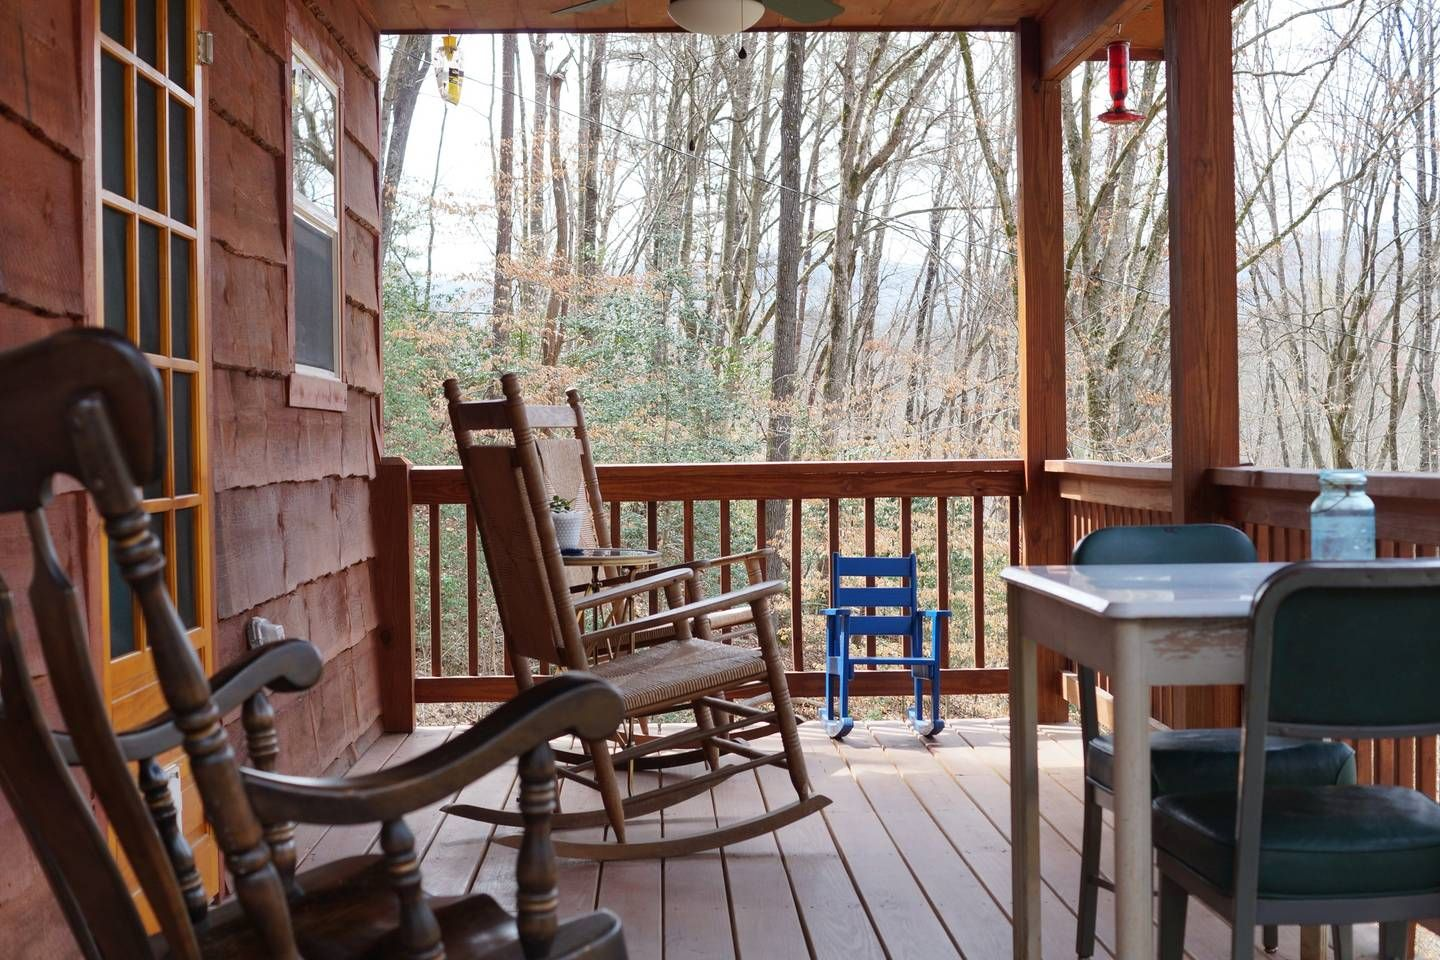 Cozy Cabin in the Woods - Cabins for Rent in Whittier, North Carolina, United States   Cozy ...